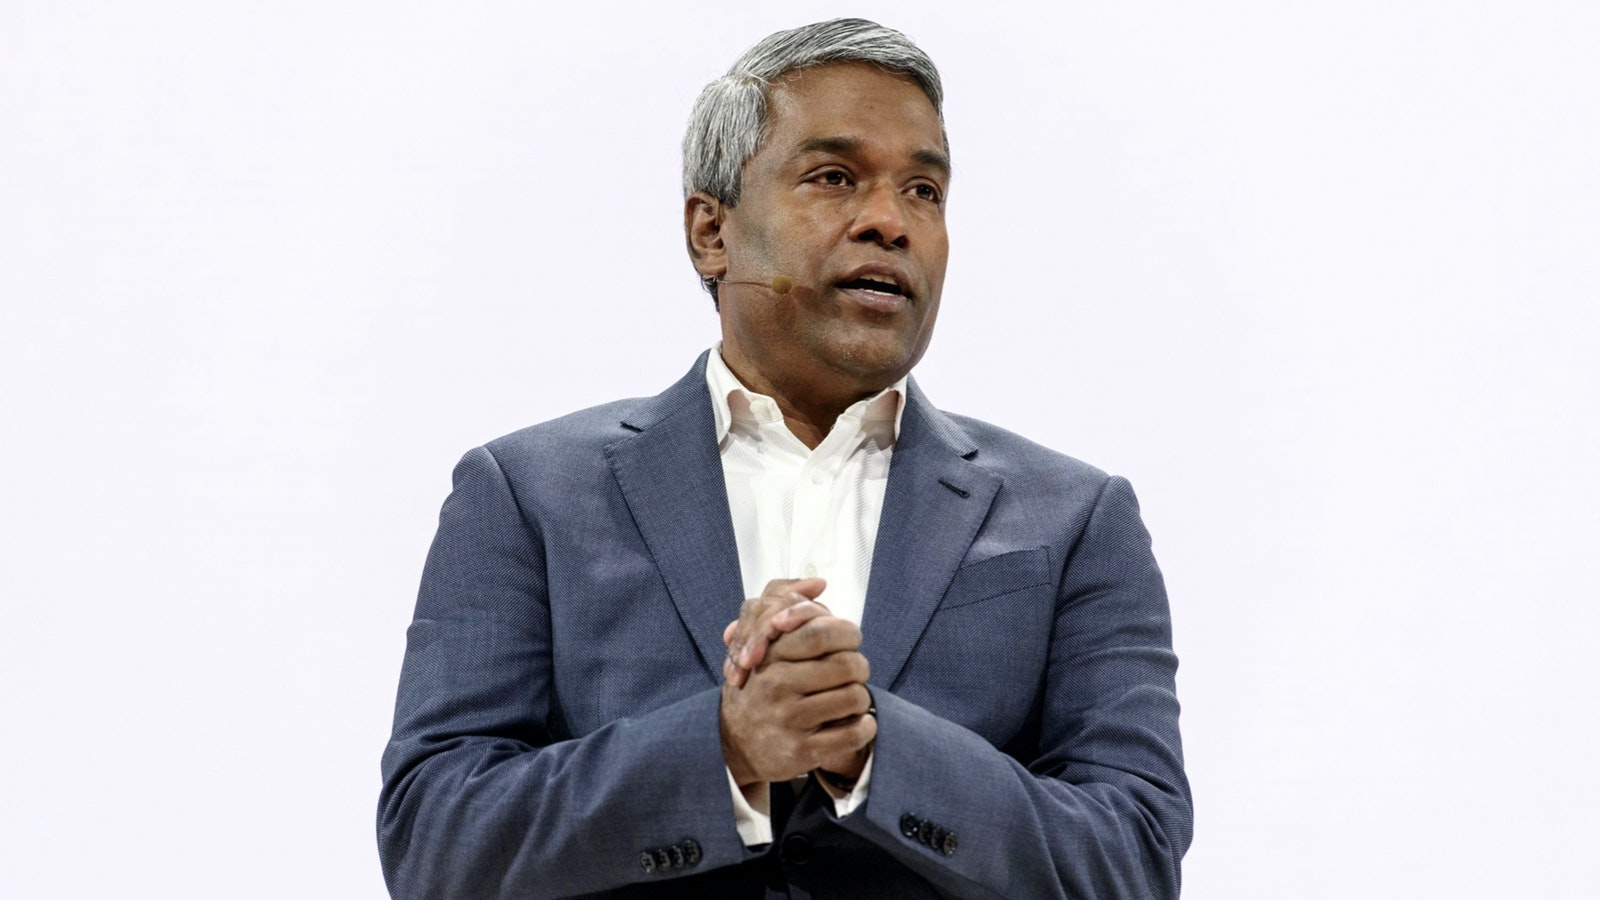 Google Cloud CEO Thomas Kurian. Photo by Bloomberg